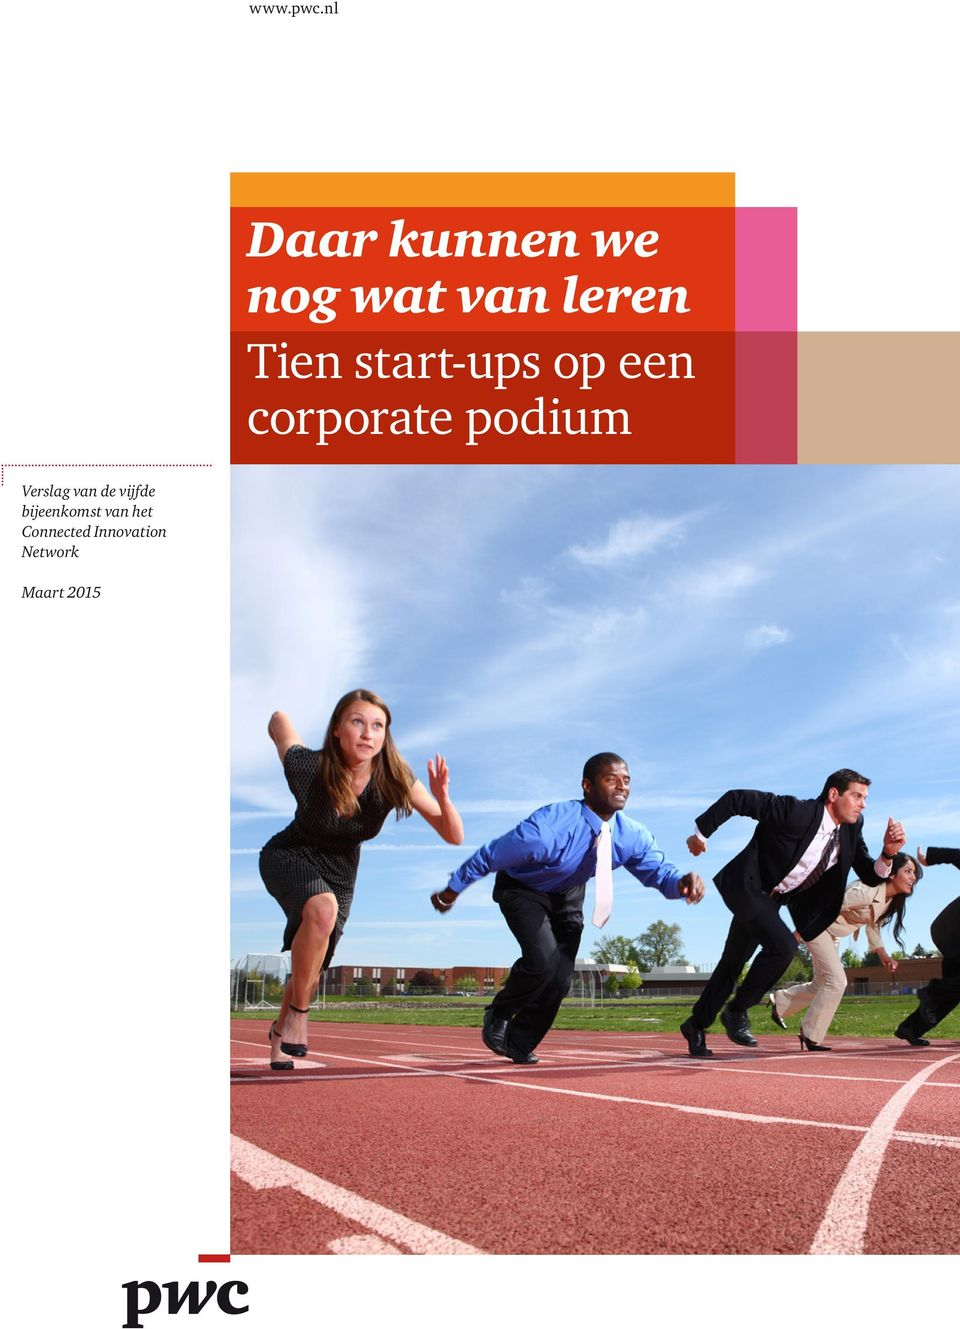 start-ups op een corporate podium